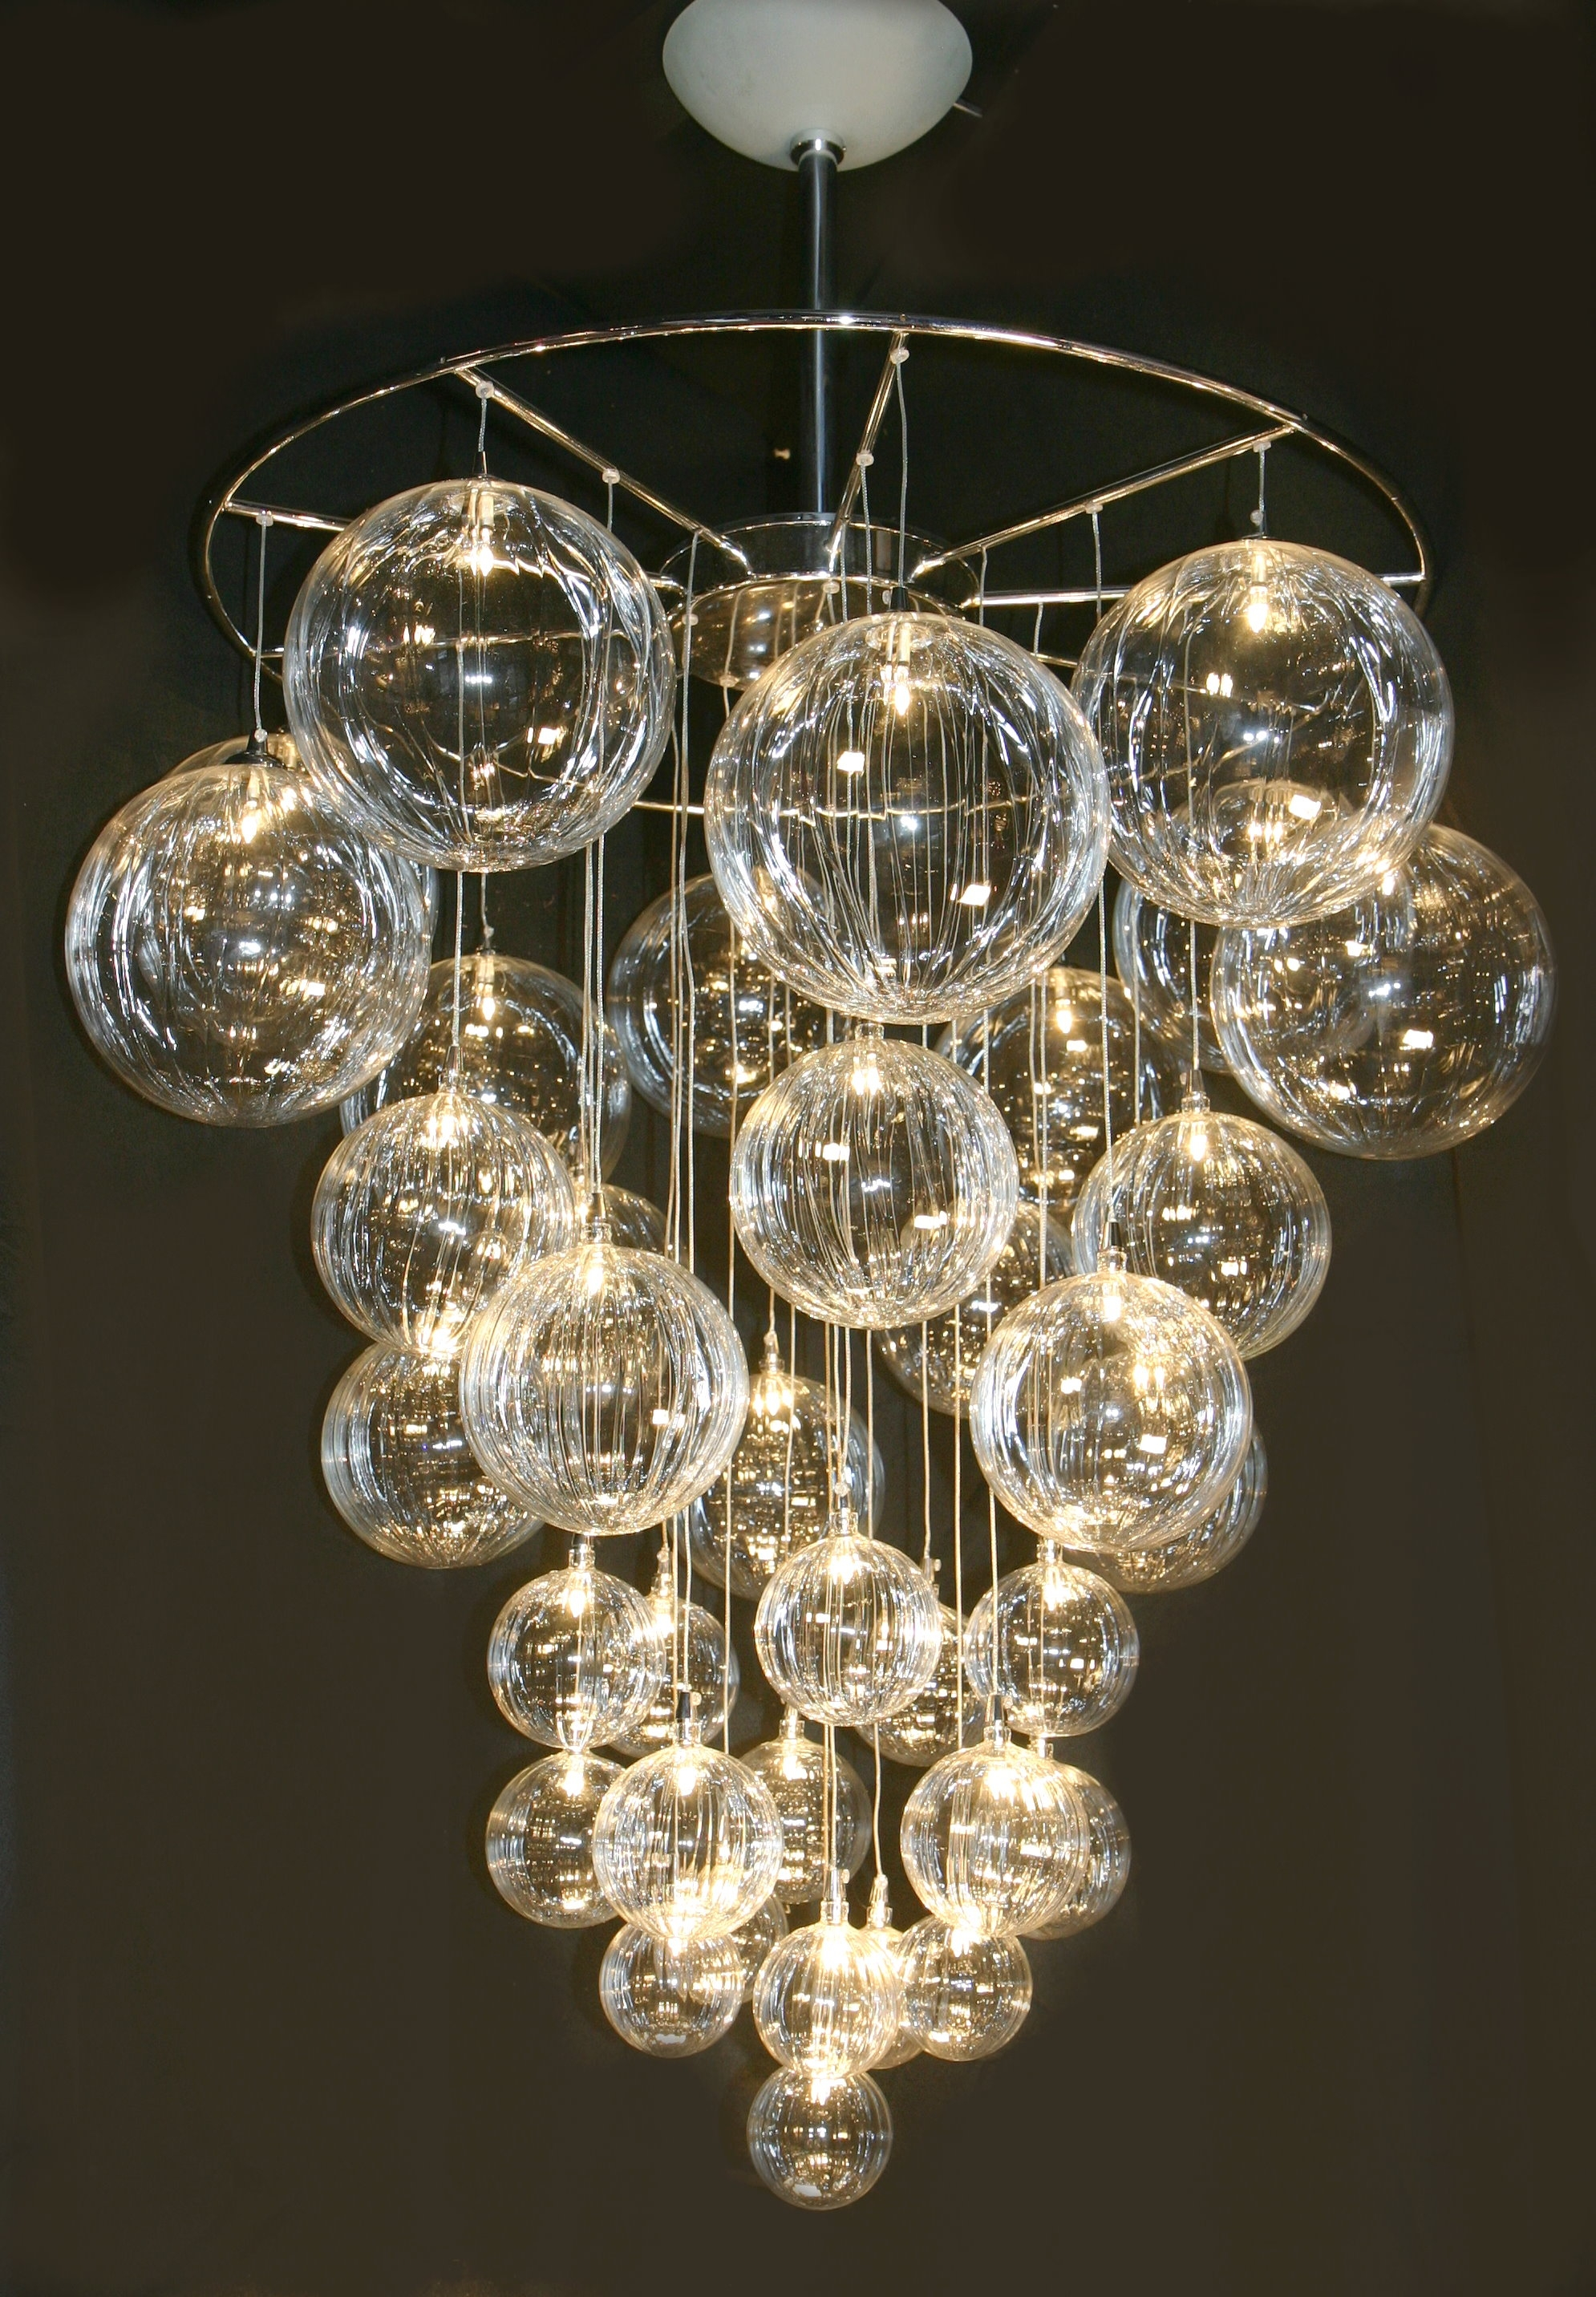 53 Modern Chandelier Lighting Chromecrystalmetal Bubble Shade Intended For Contemporary Chandeliers (Image 3 of 15)